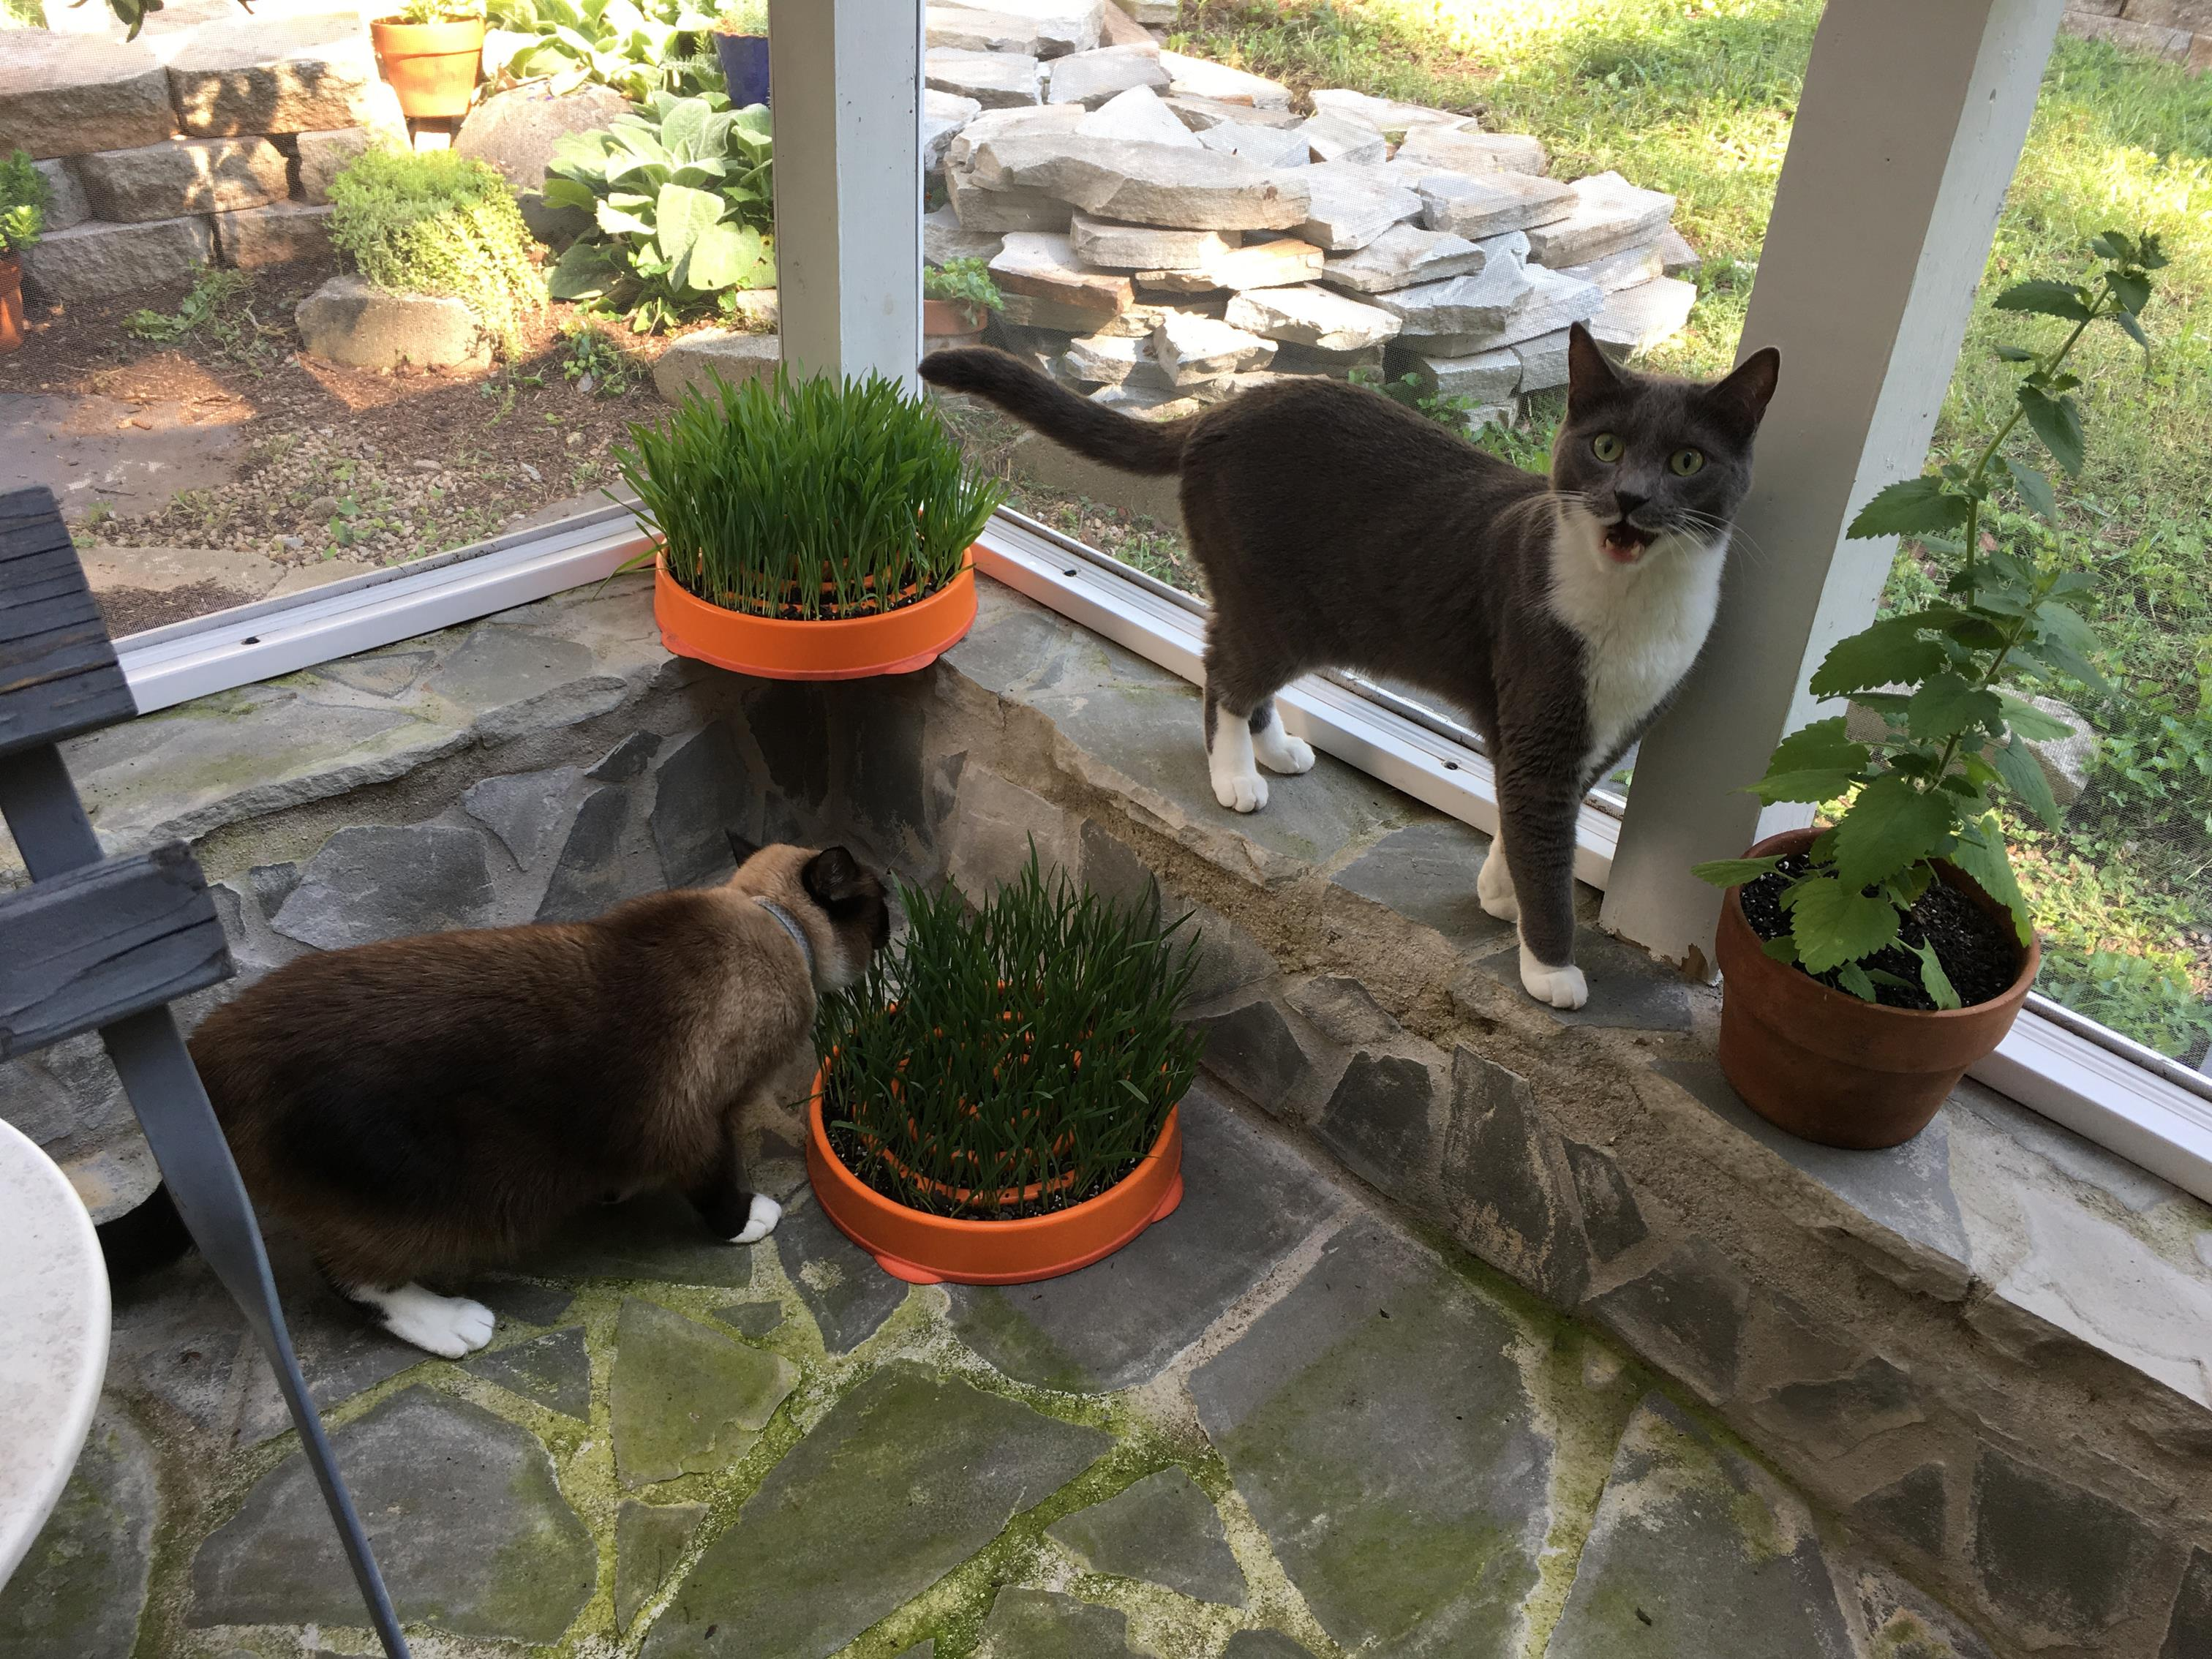 Here Willow and Soren are enjoying their cat grass planters.